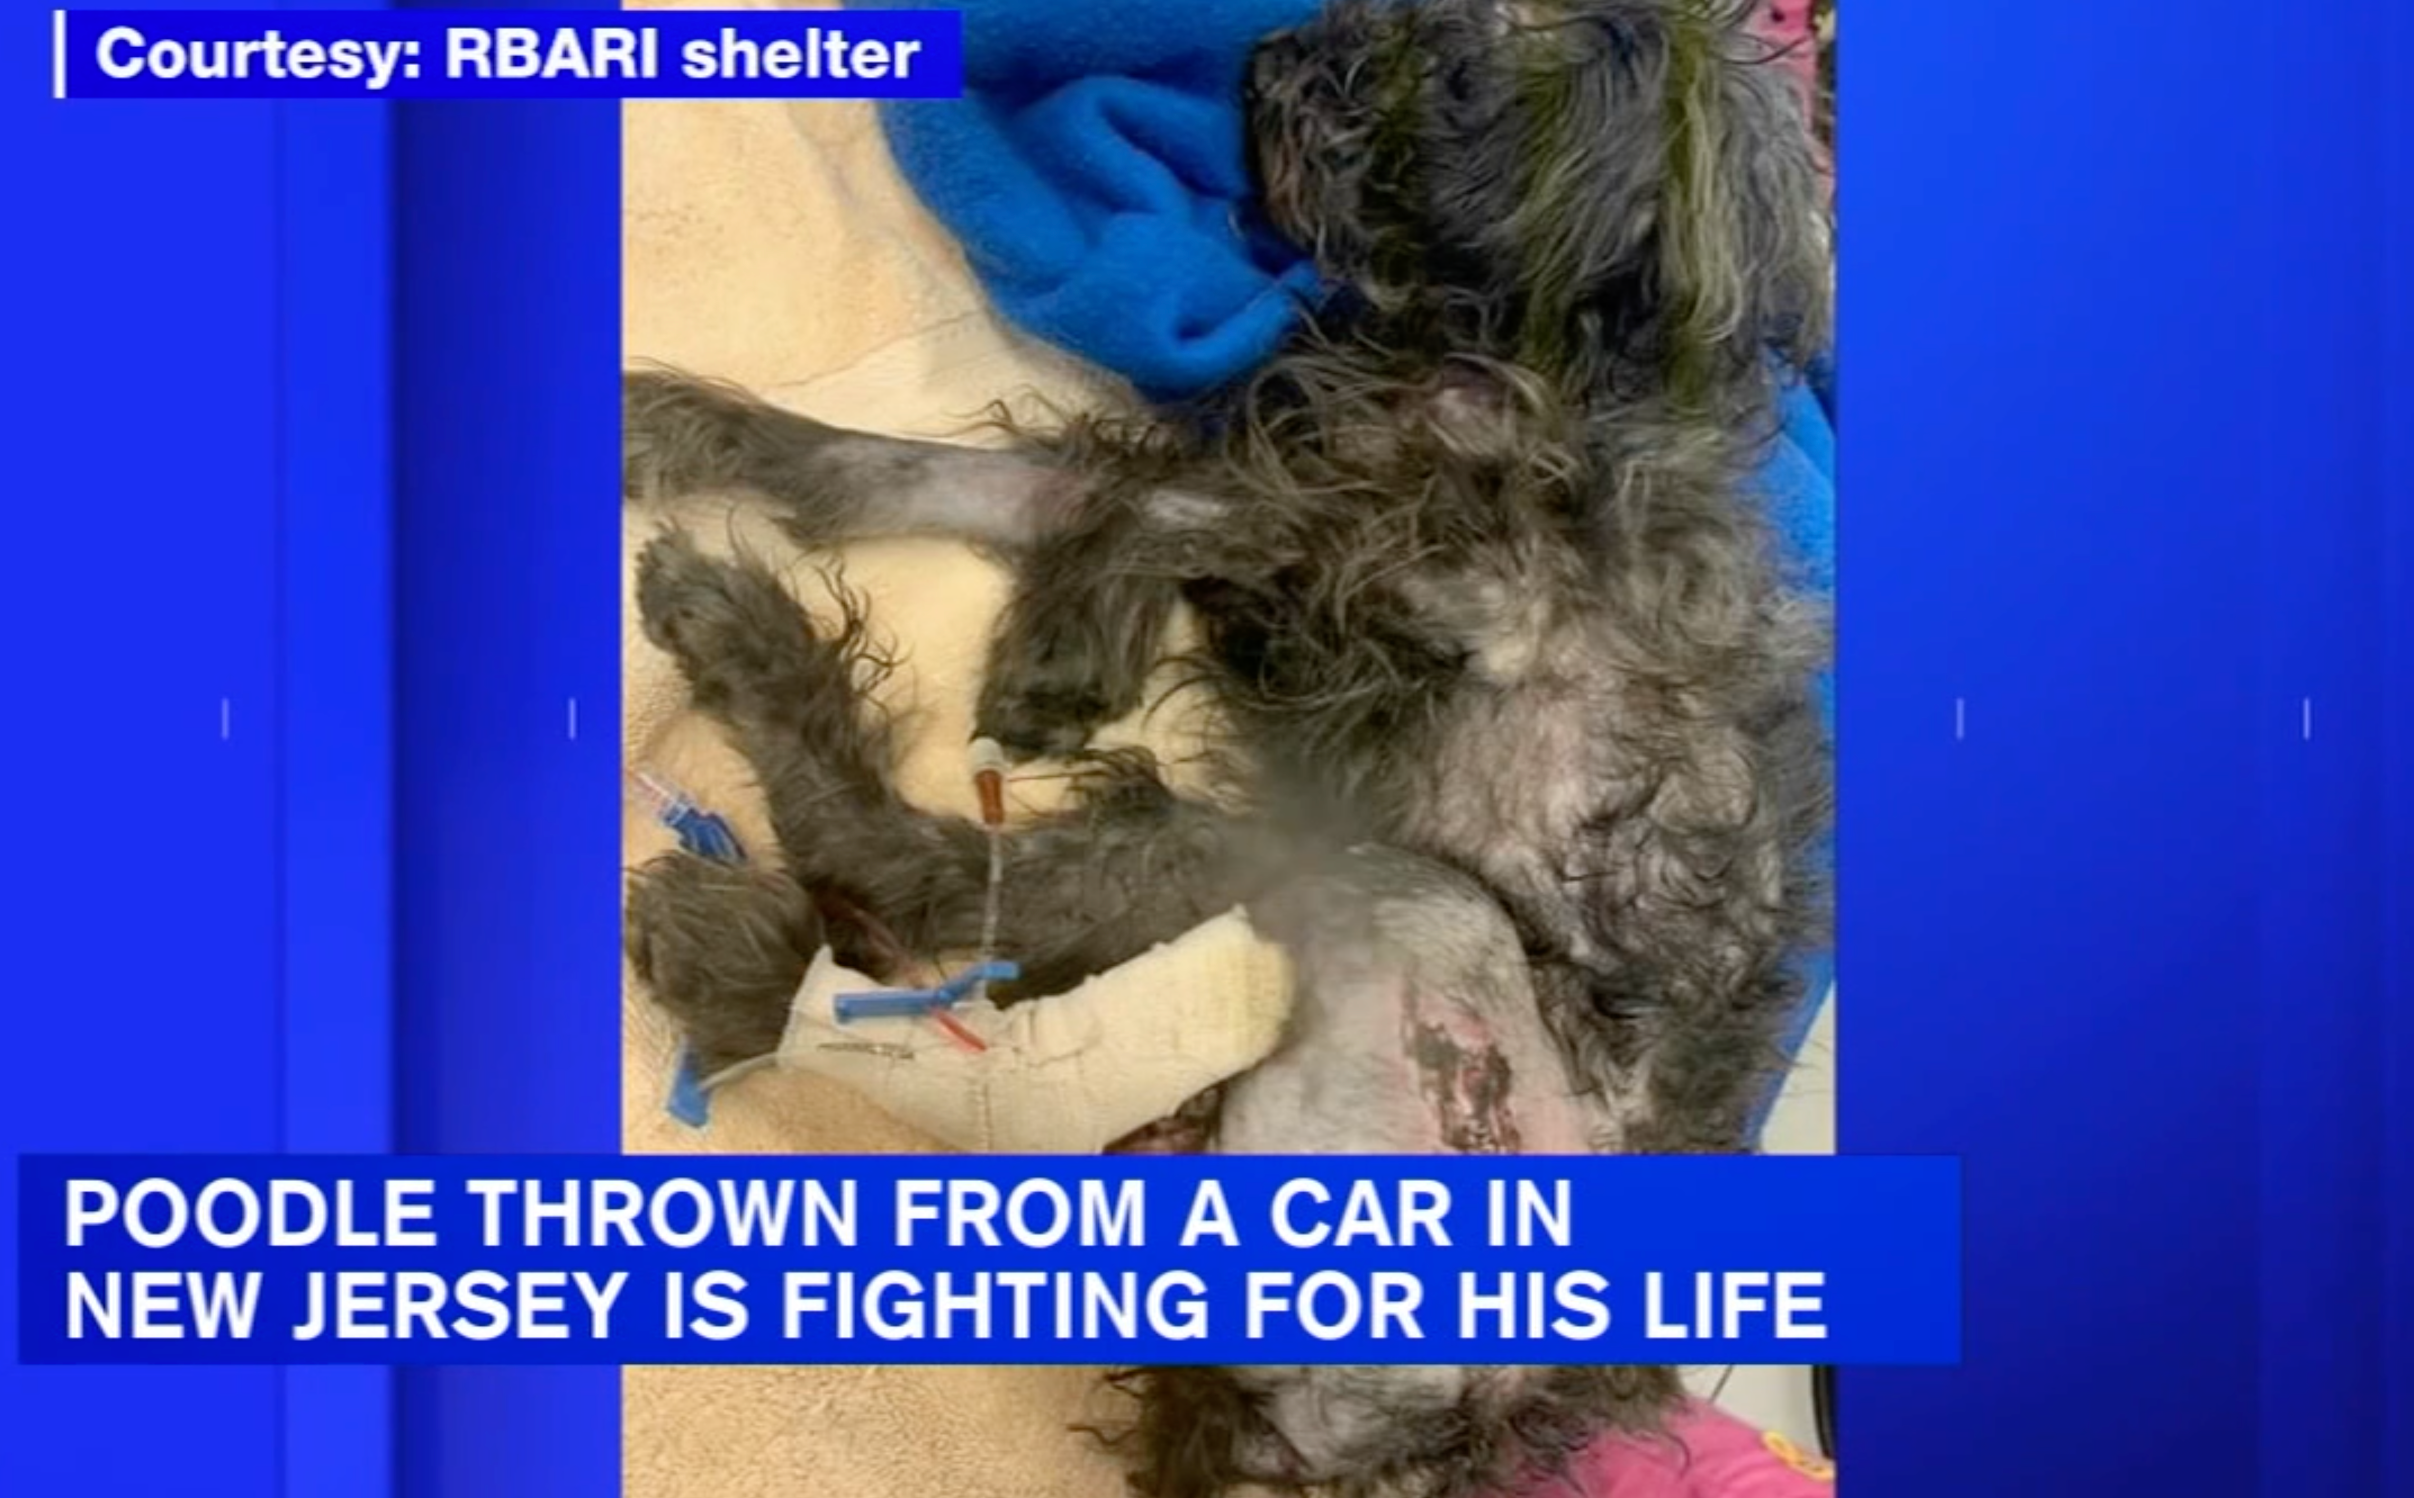 Dog named Bear fighting for his life after being thrown out of car (ABC 7 NY)